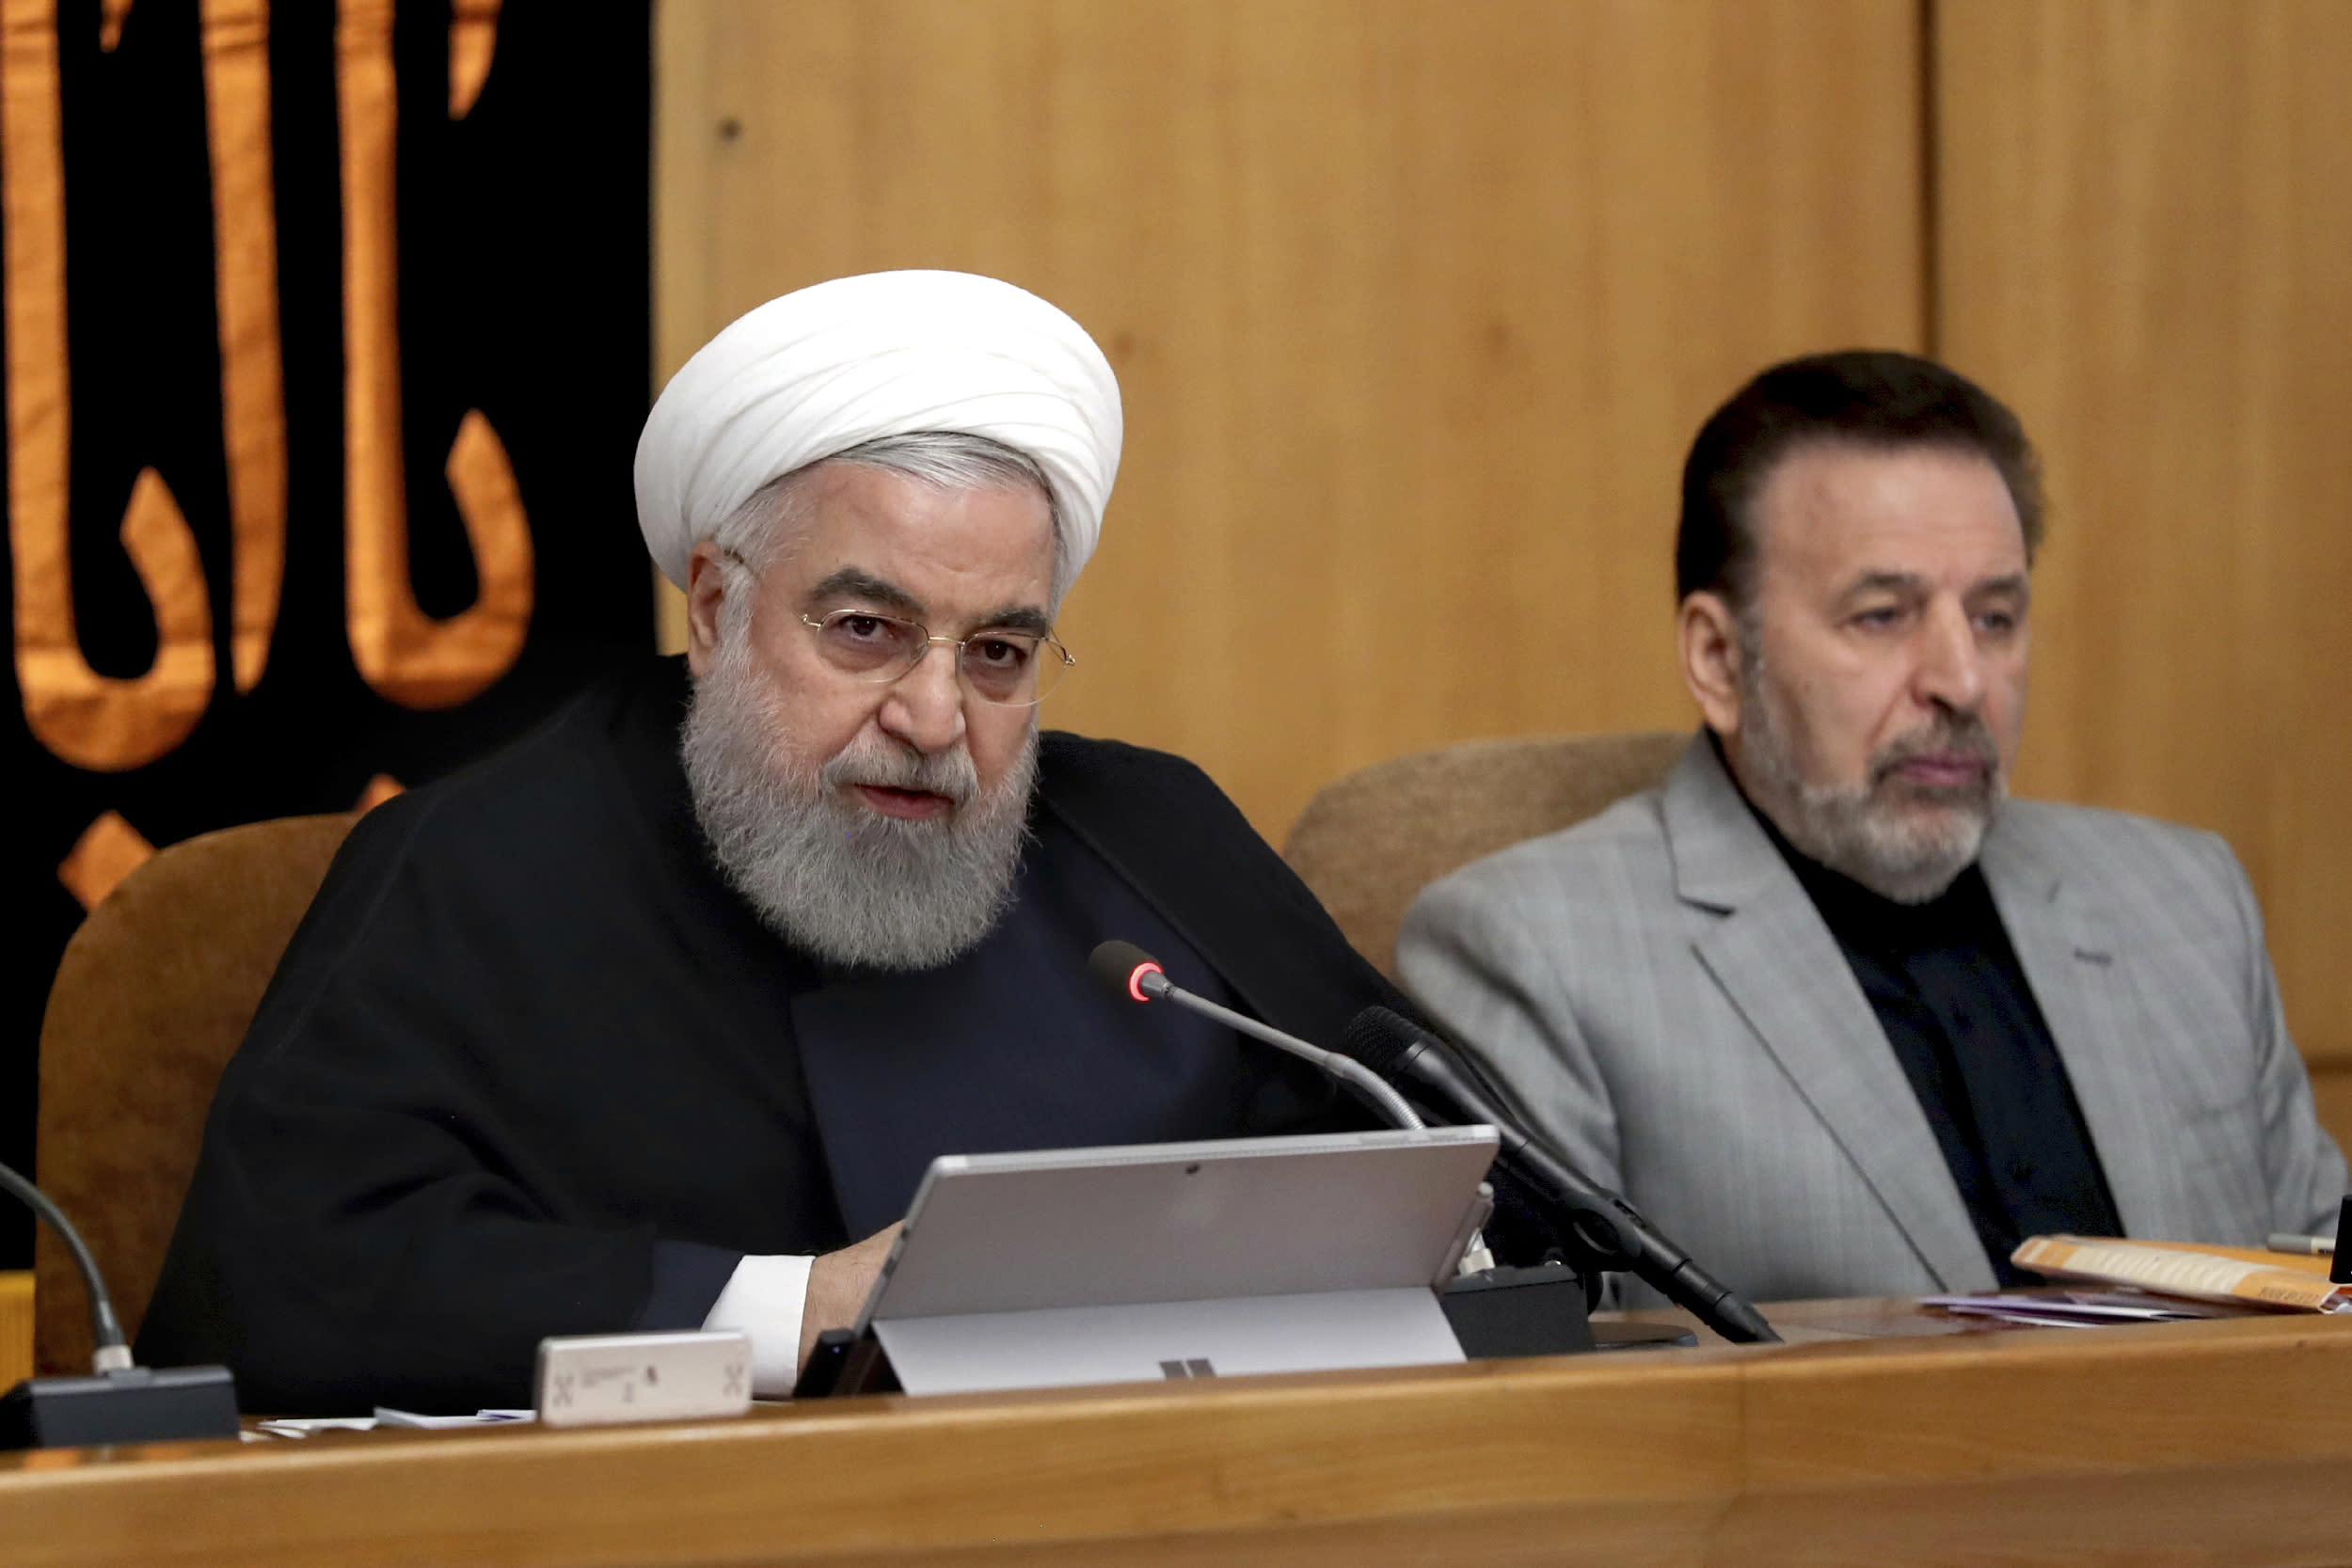 """In this photo released by the office of the Iranian Presidency, President Hassan Rouhani speaks in a cabinet meeting in Tehran, Iran, Wednesday, Sept. 4, 2019. Rouhani reiterated a threat that Tehran would take additional steps away from the 2015 nuclear accord on Friday and accelerate its nuclear activities if Europe fails to provide a solution, calling it Iran's third, """"most important step"""" away from the deal. (Iranian Presidency Office via AP)"""